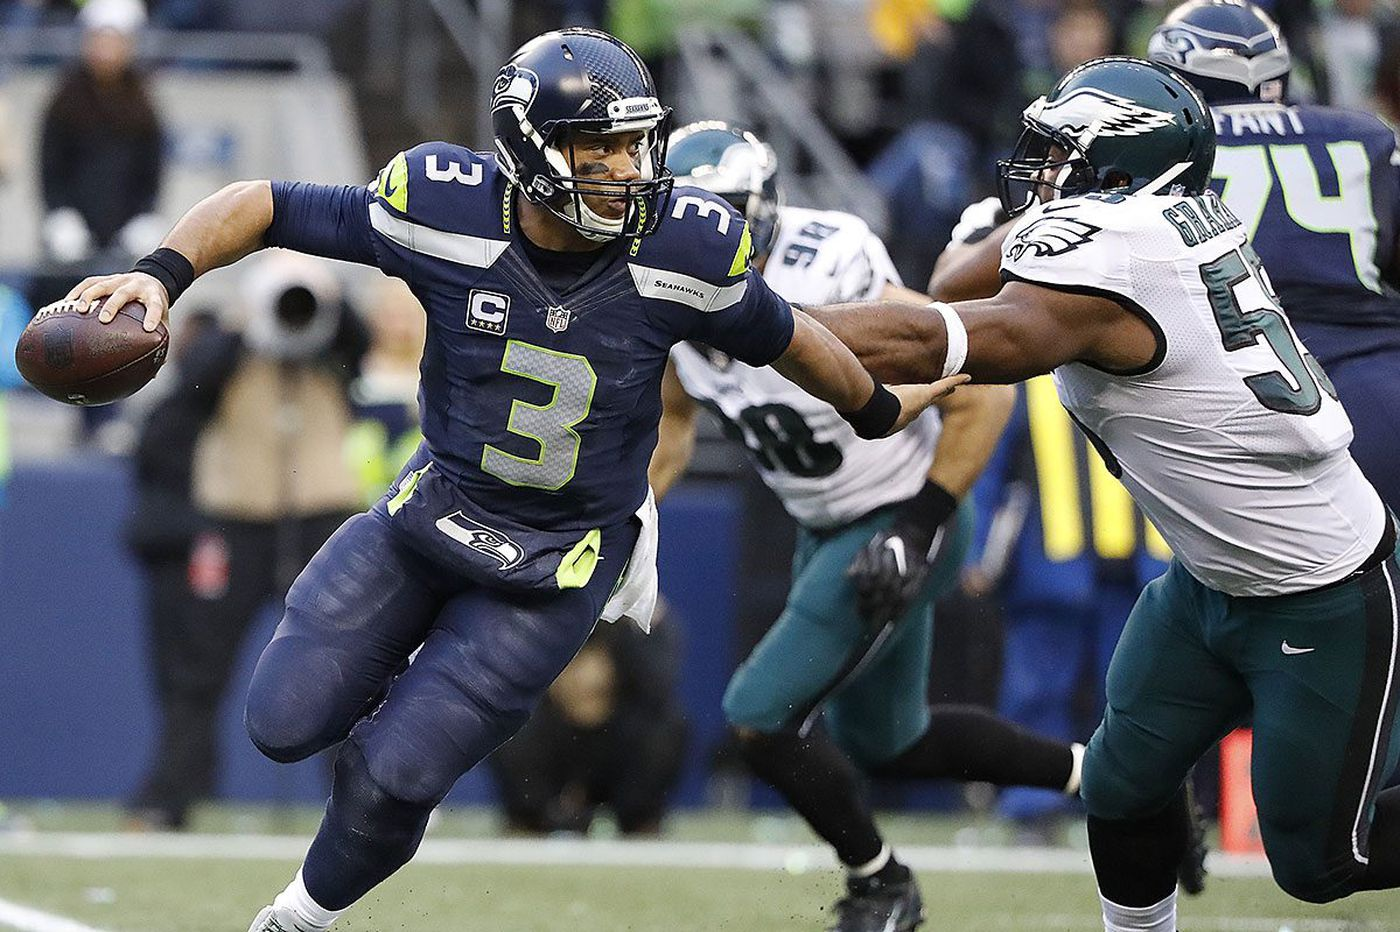 Seahawks QB Russell Wilson poses perhaps toughest challenge yet for Eagles